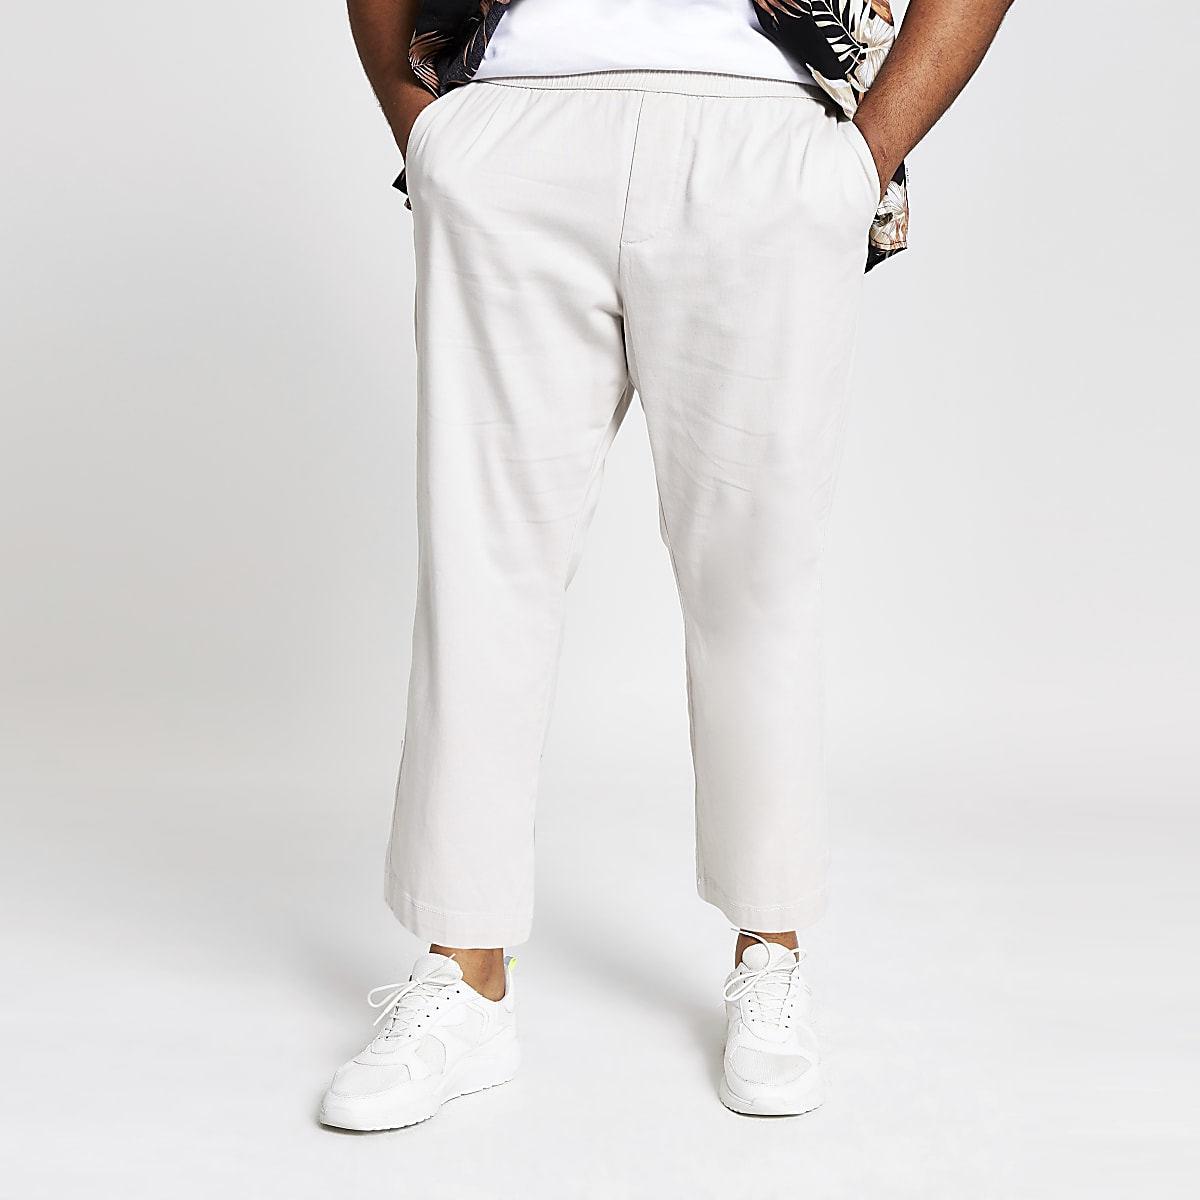 Only & Sons Big and Tall grey wide pants